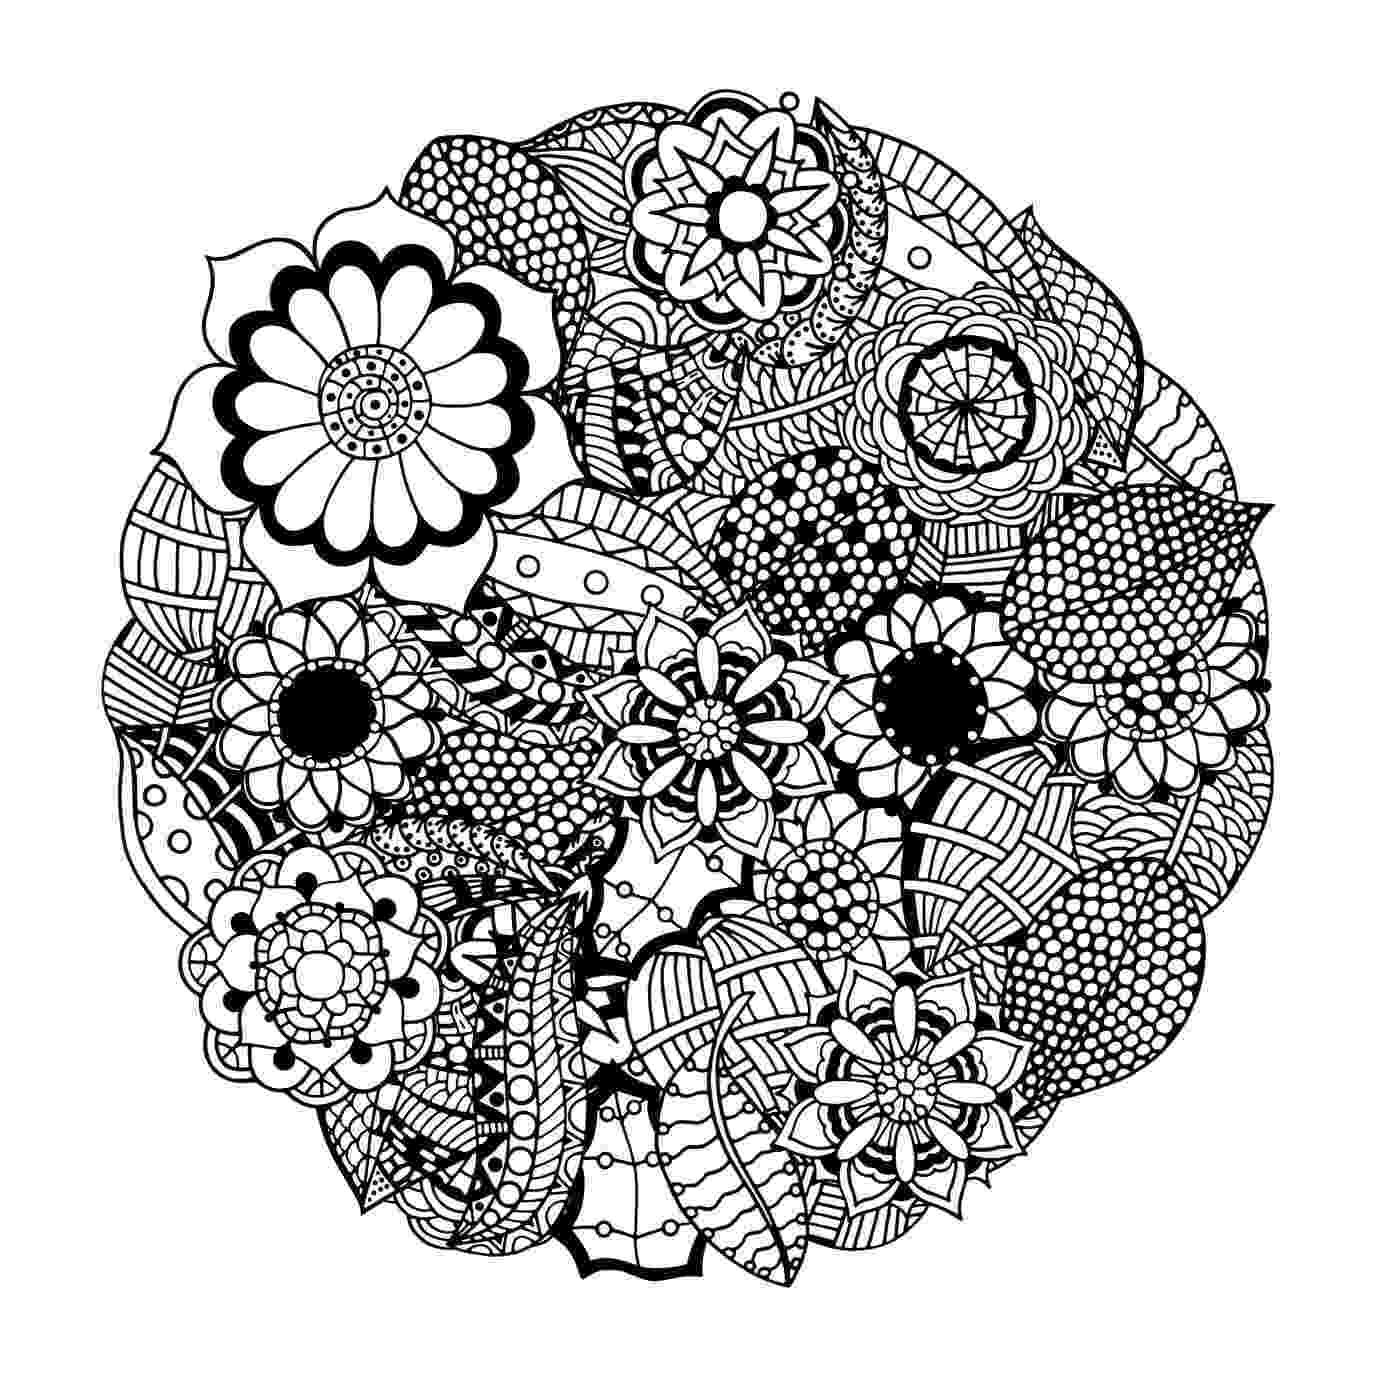 printable mandala coloring pages for adults these printable abstract coloring pages relieve stress and printable pages adults mandala for coloring